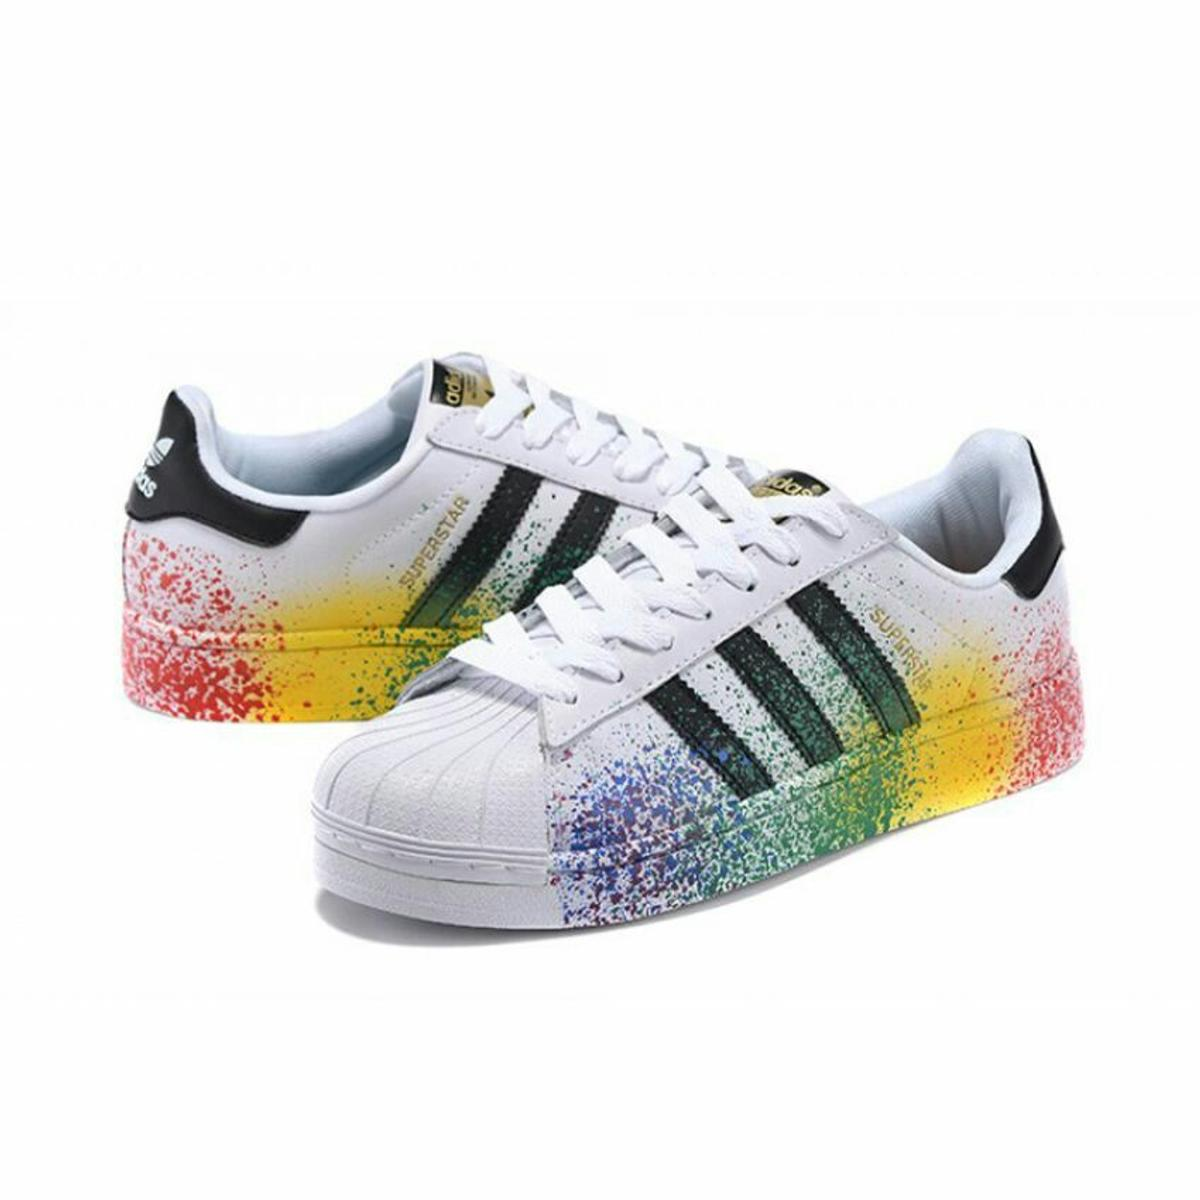 special for shoe casual shoes the sale of shoes Adidas superstars paint splash edition